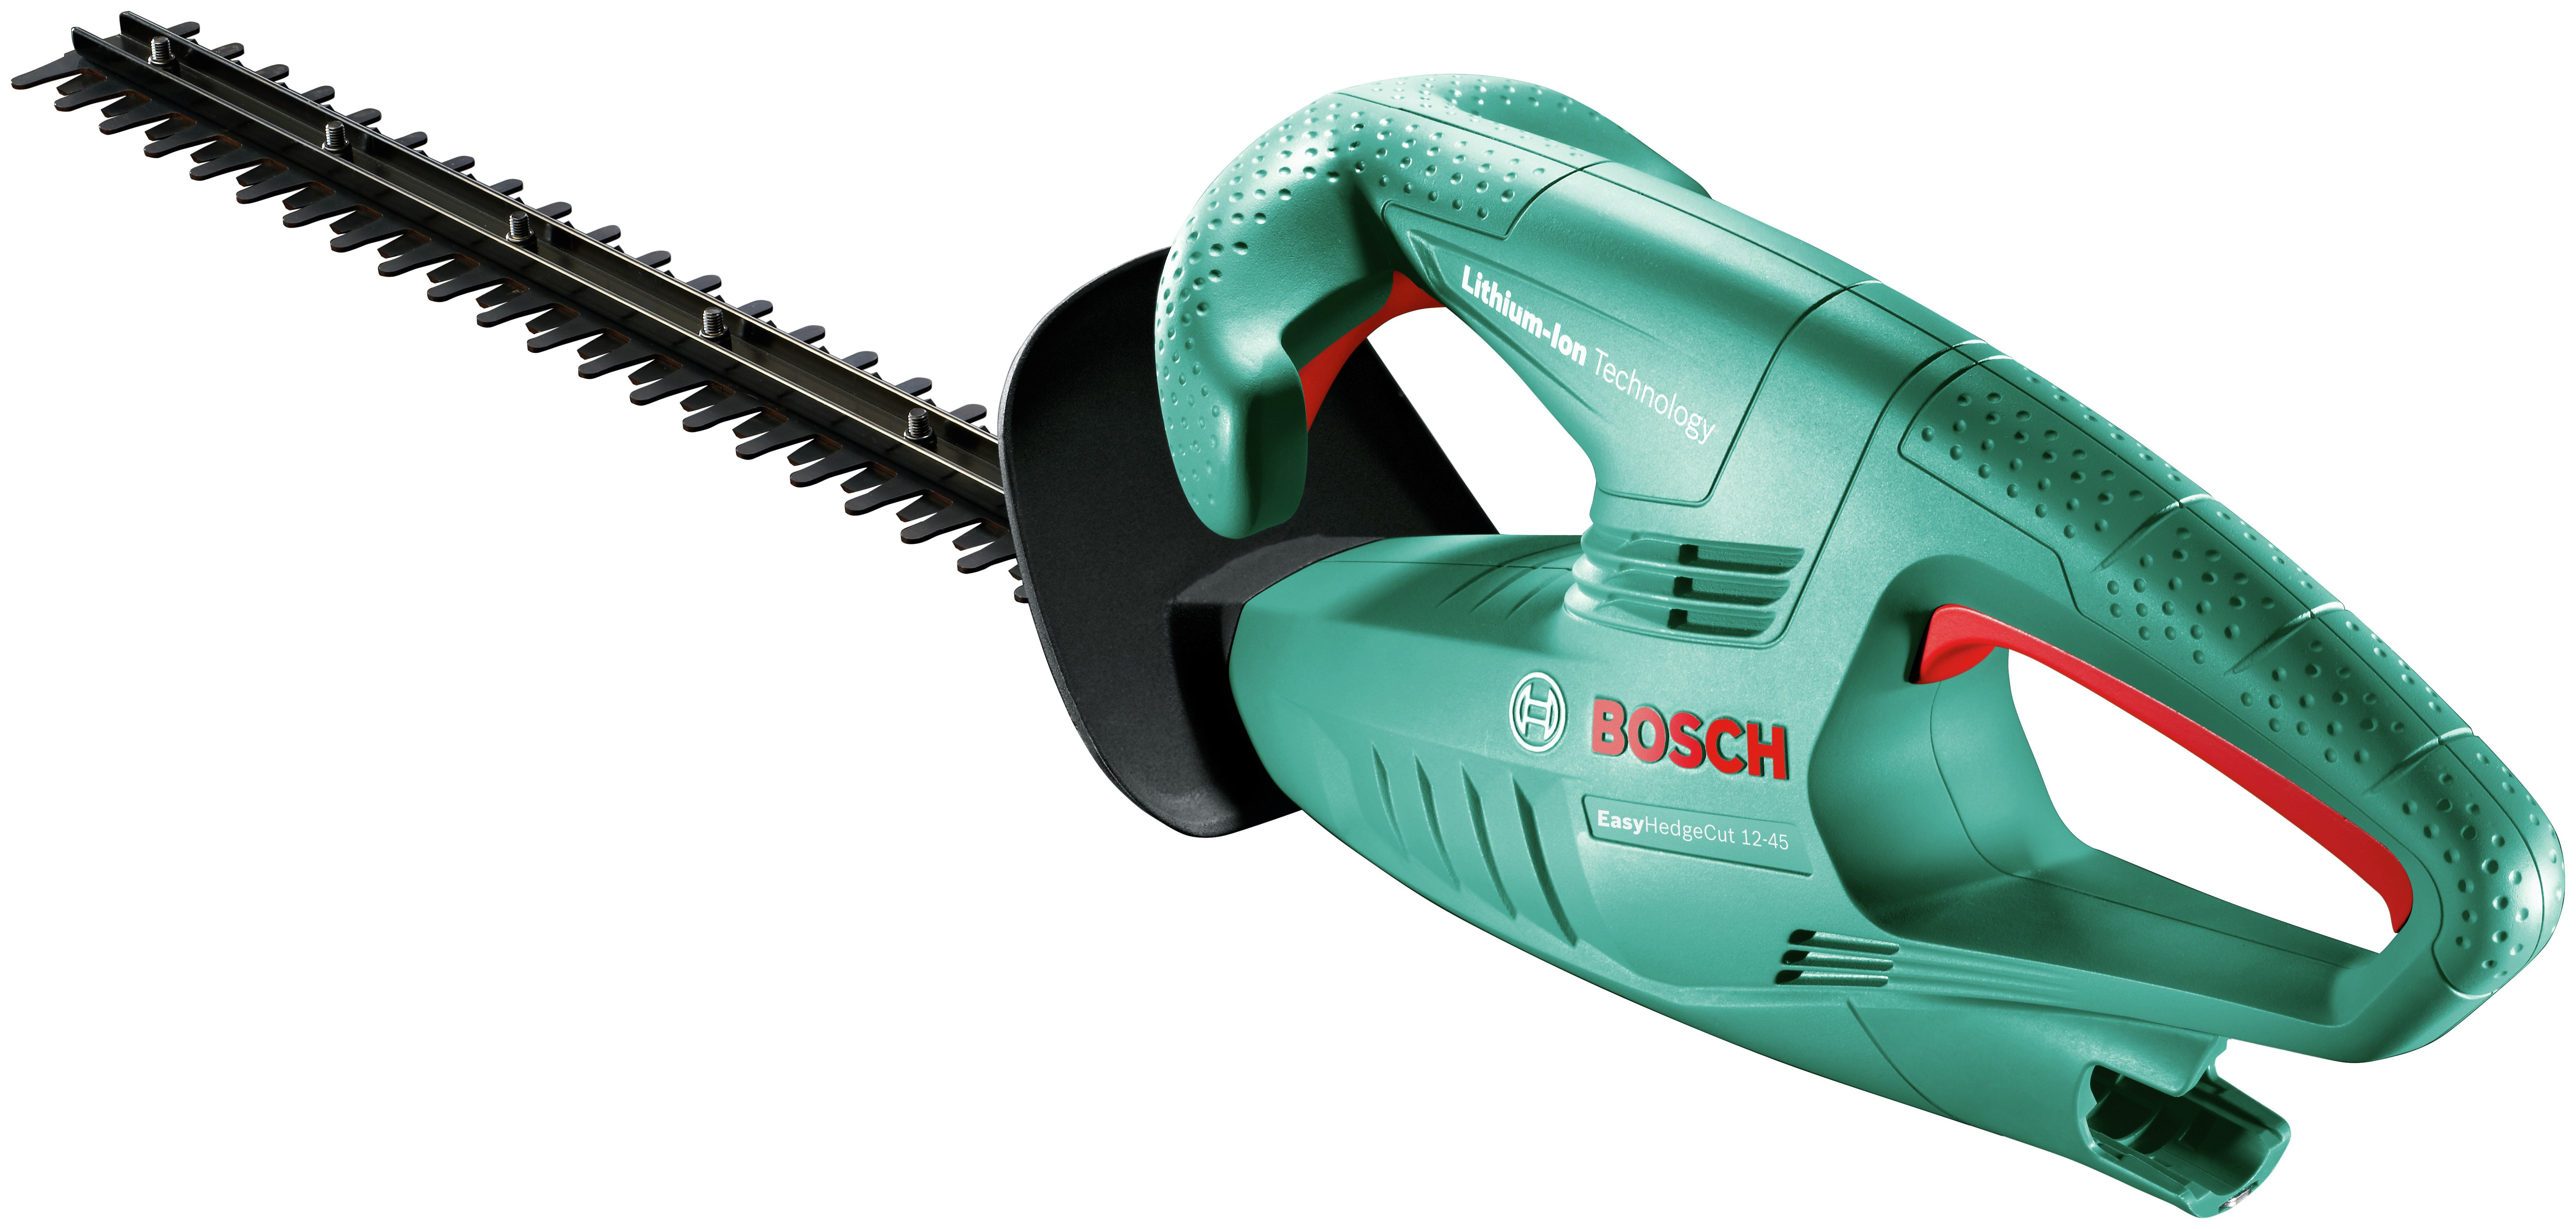 Image of Bosch 12-45 Cordless Hedge Trimmer - Bare Tool